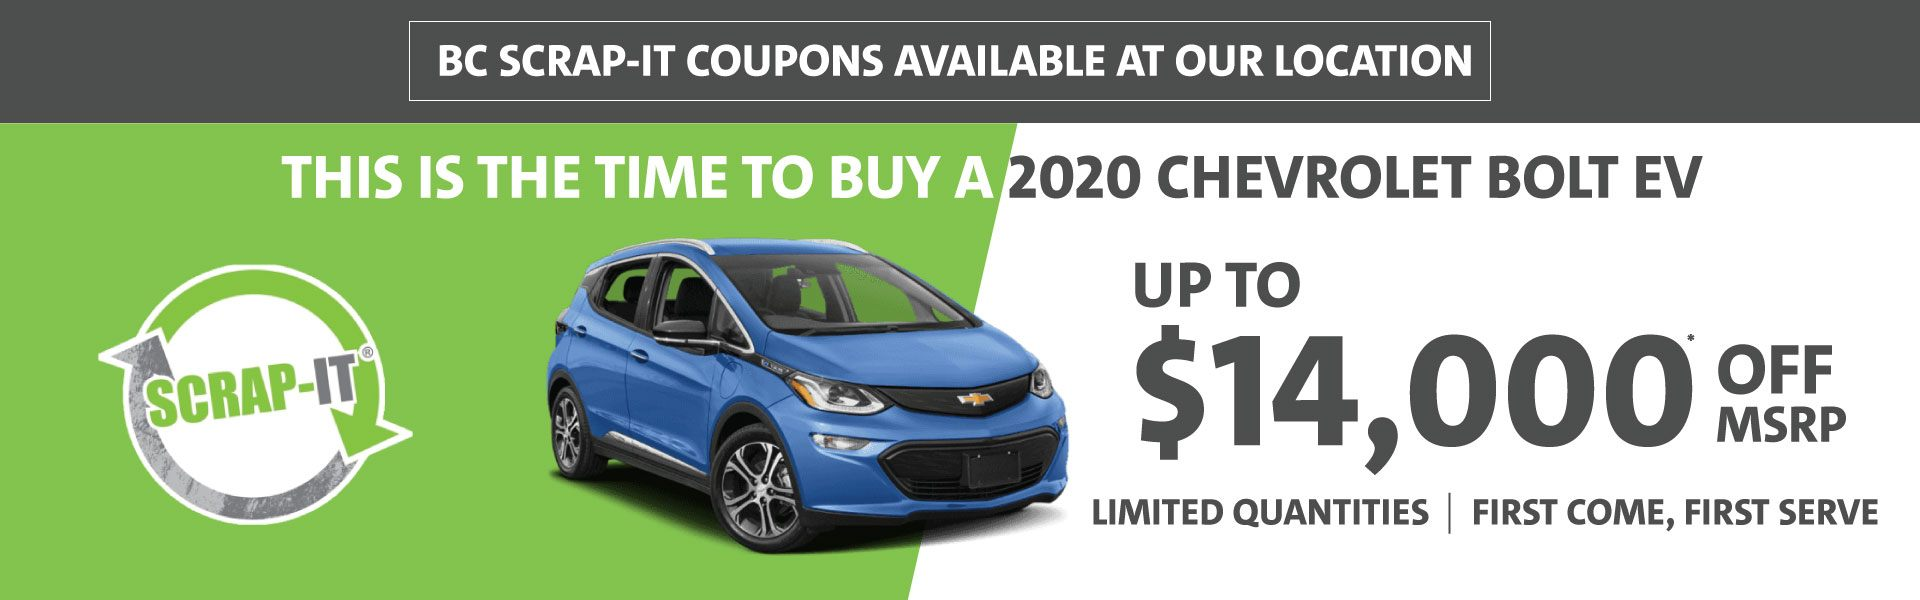 Up to $14,000 OFF 2020 Chevrolet Bolt EV